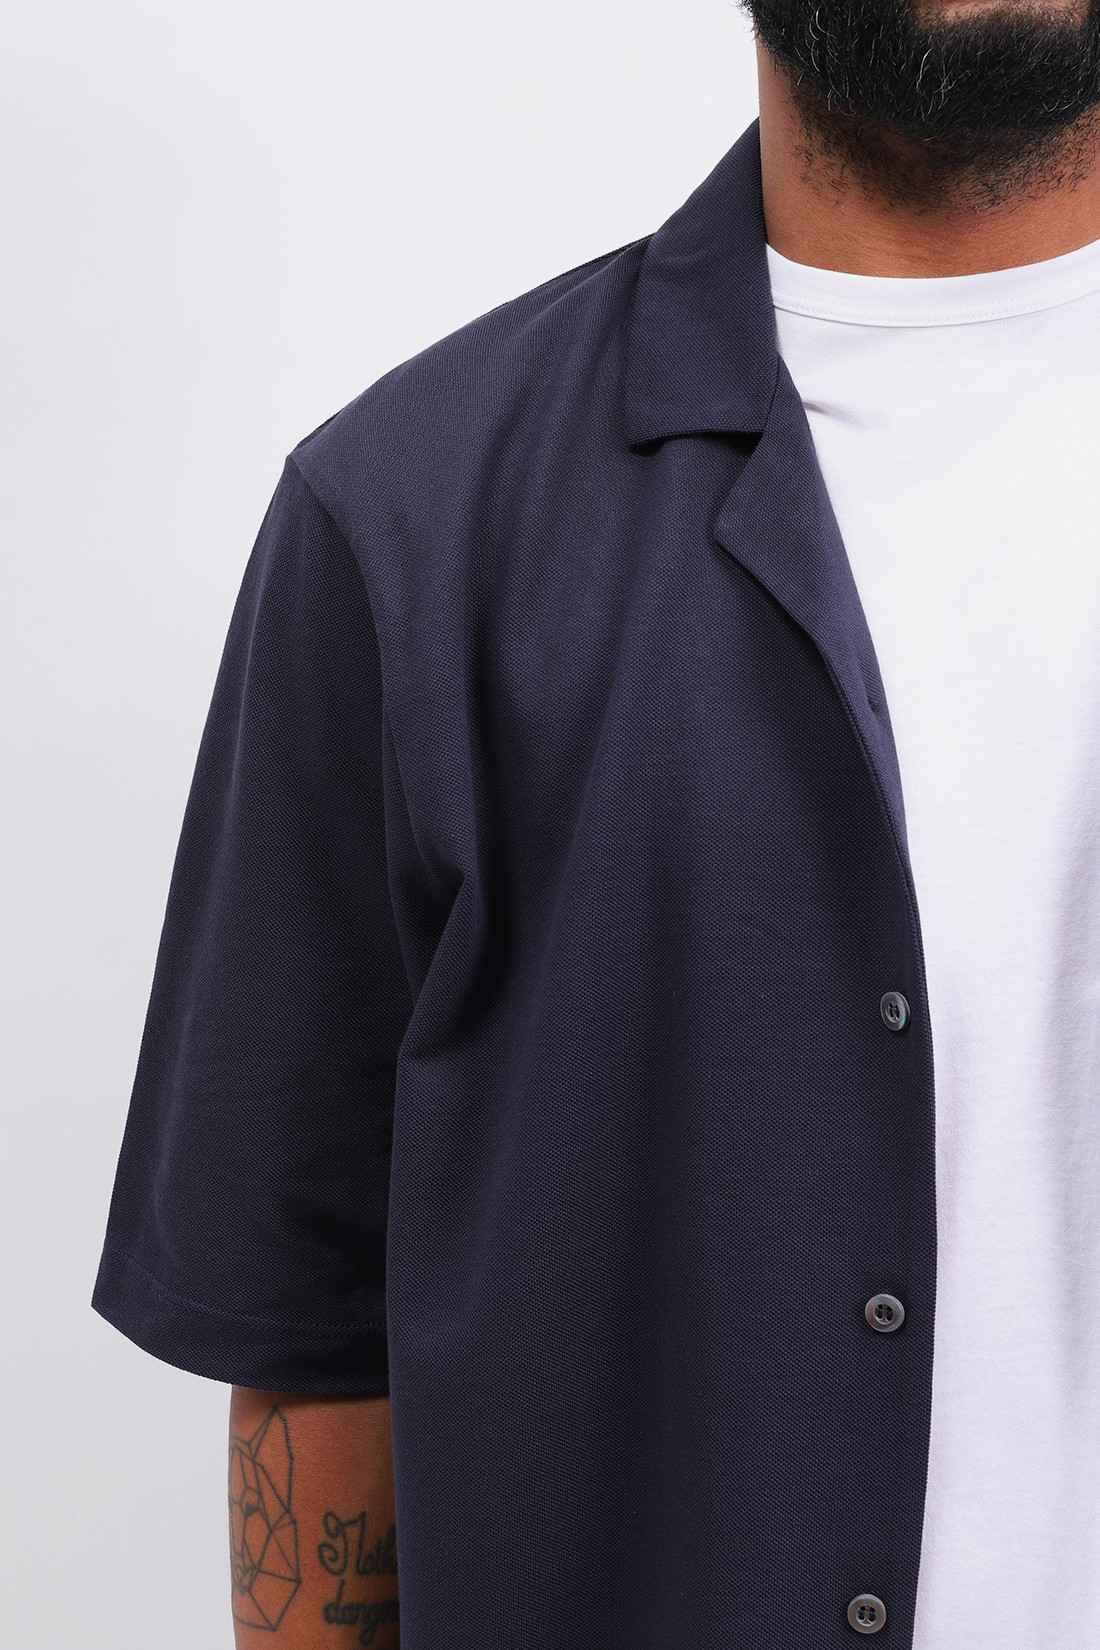 SUNSPEL / Short sleeve collar shirt Navy